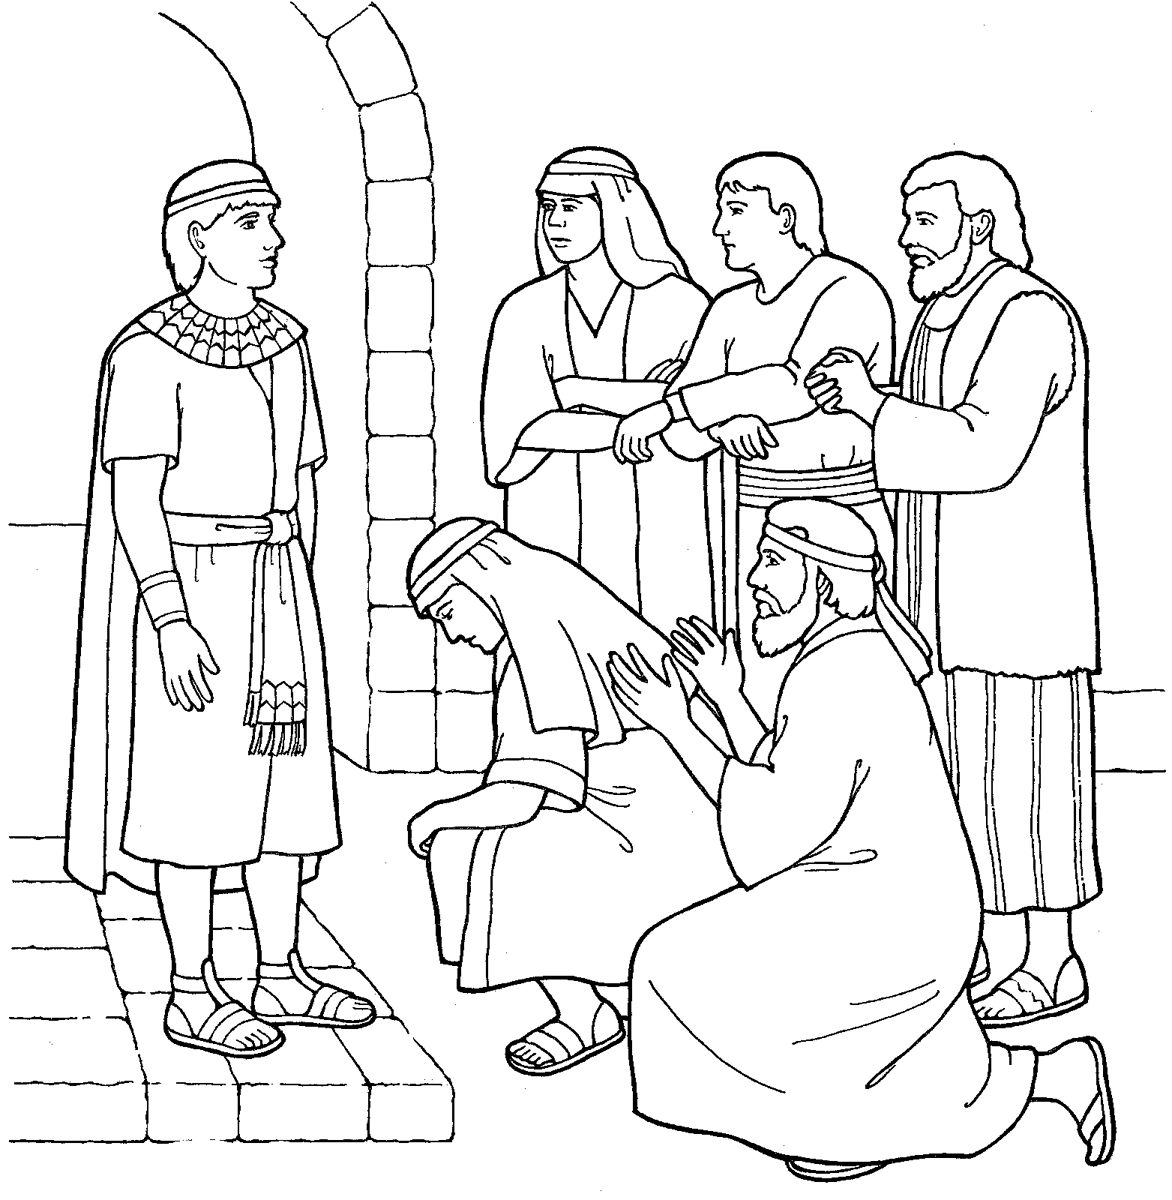 joseph in egypt coloring pages coloring pages pictures imagixs - Bible Story Coloring Pages Joseph